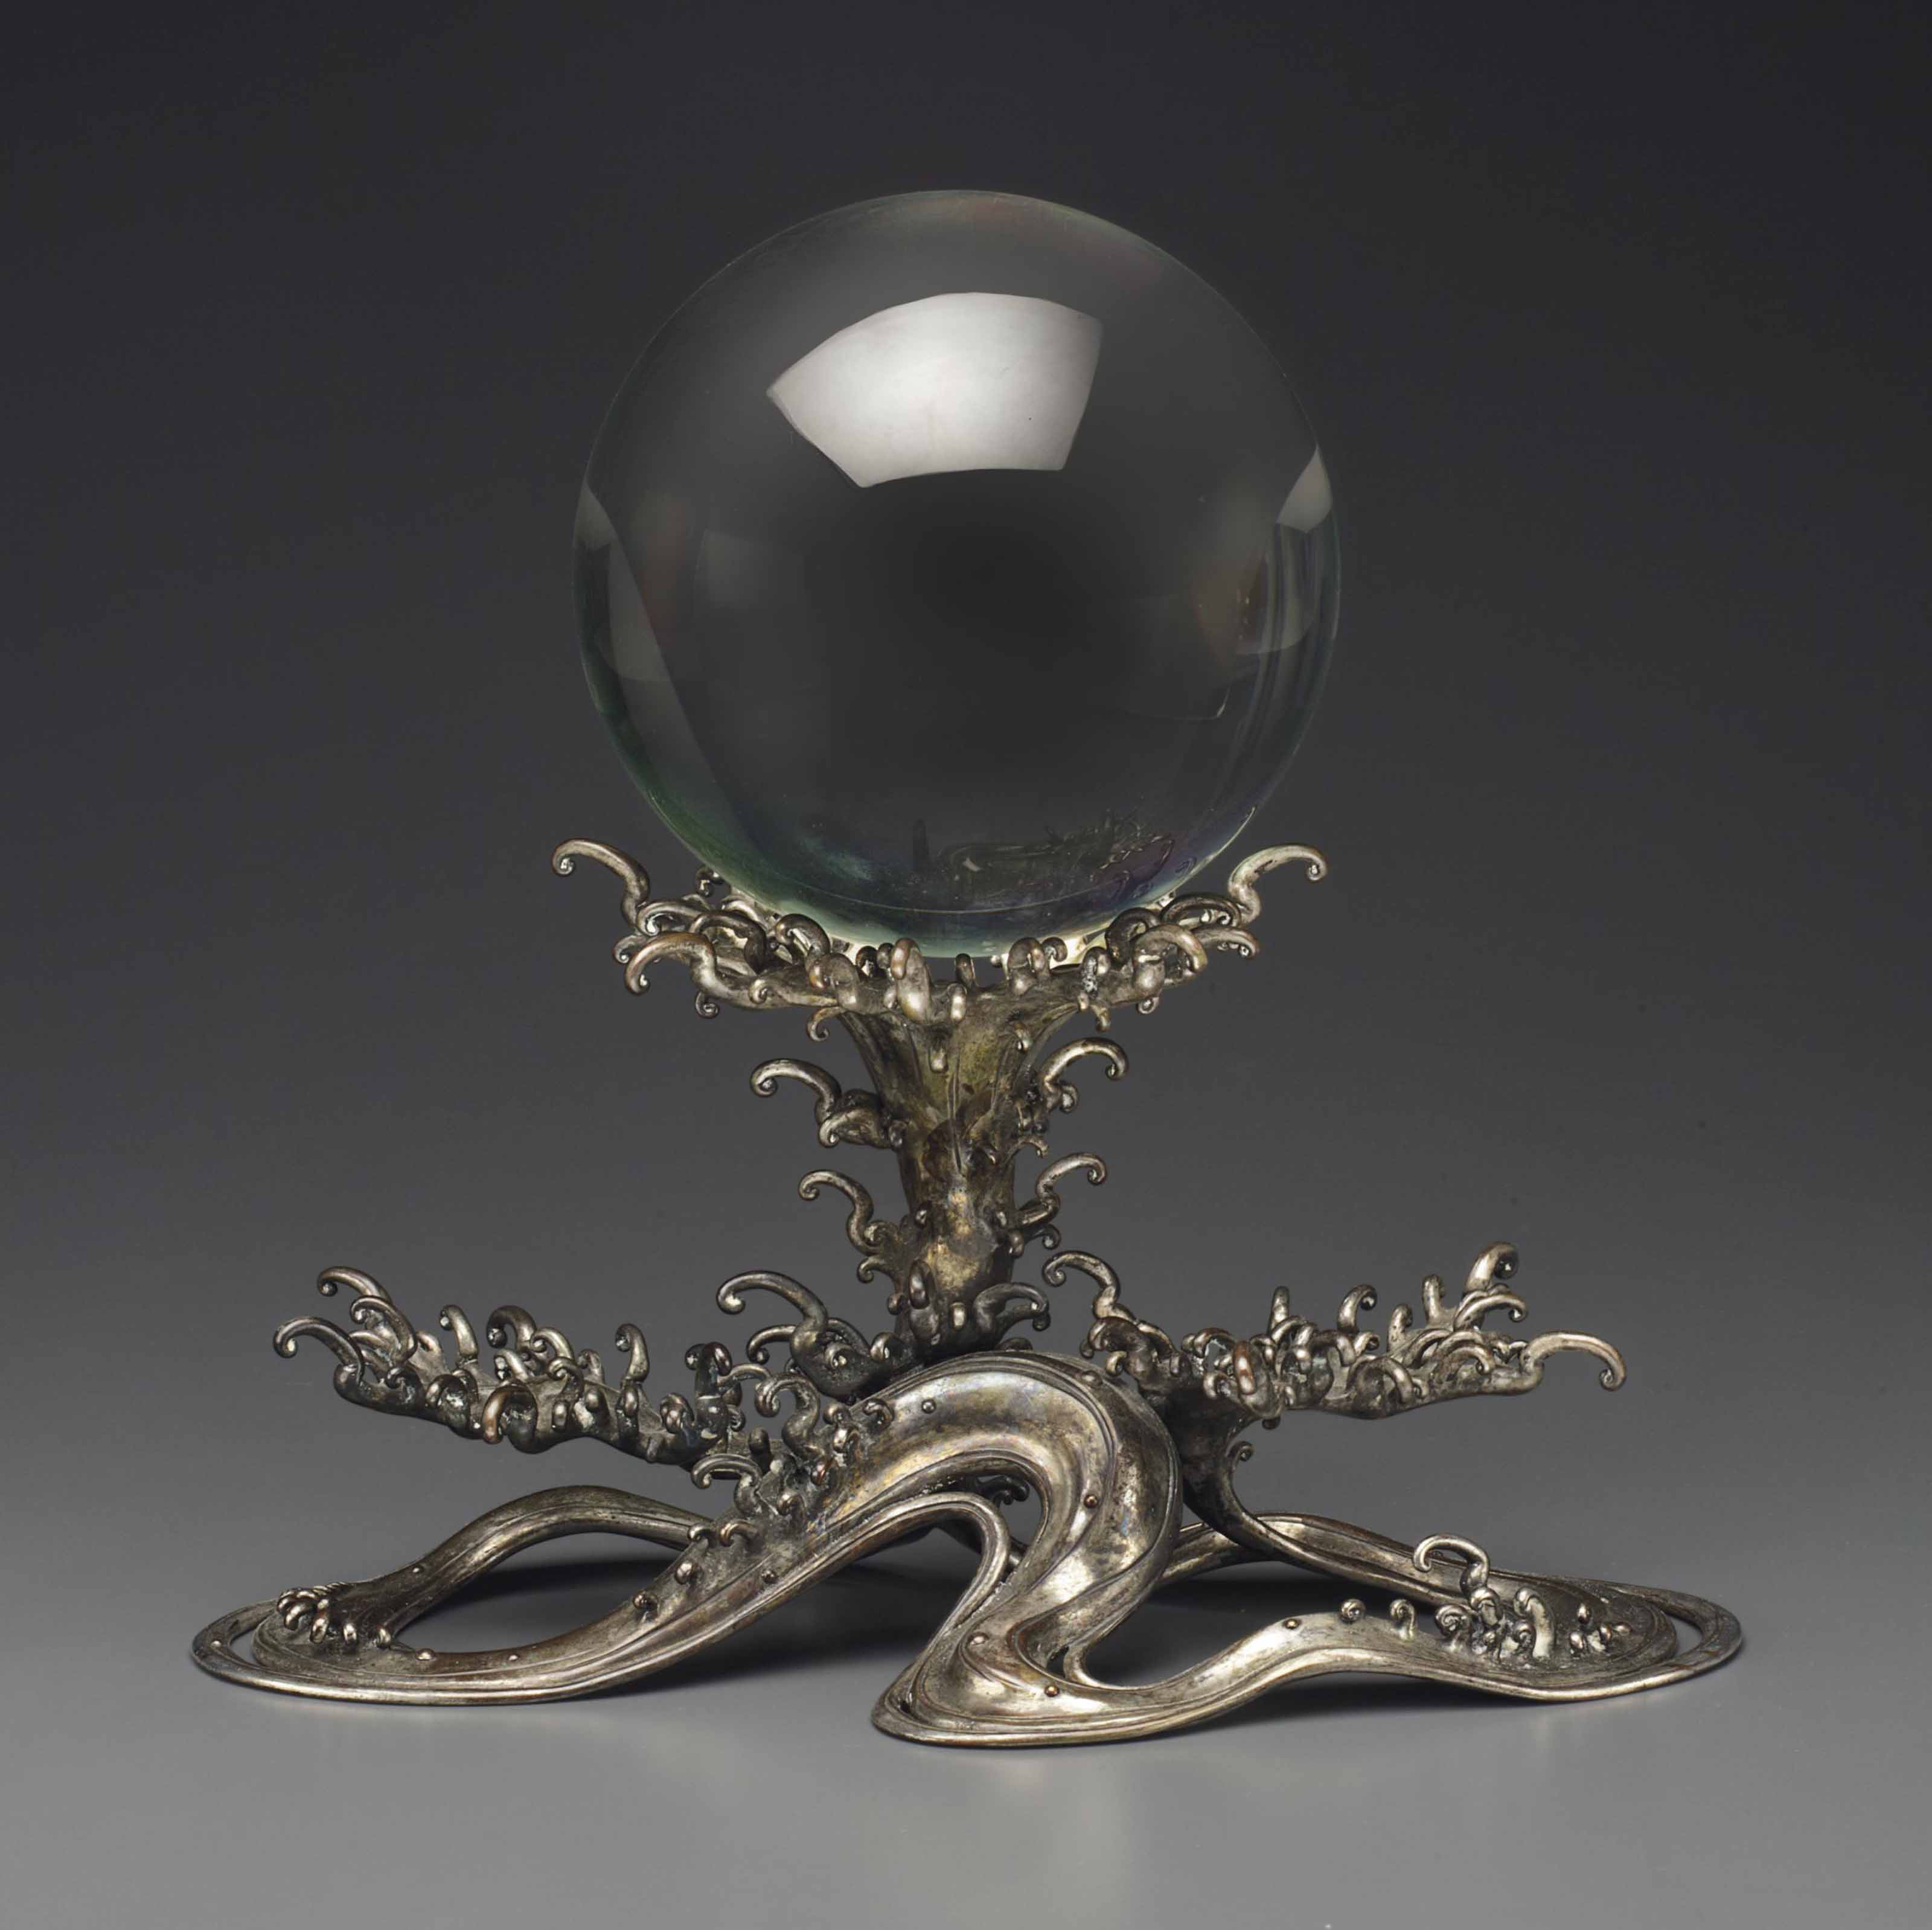 A LARGE ROCK CRYSTAL SPHERE ON